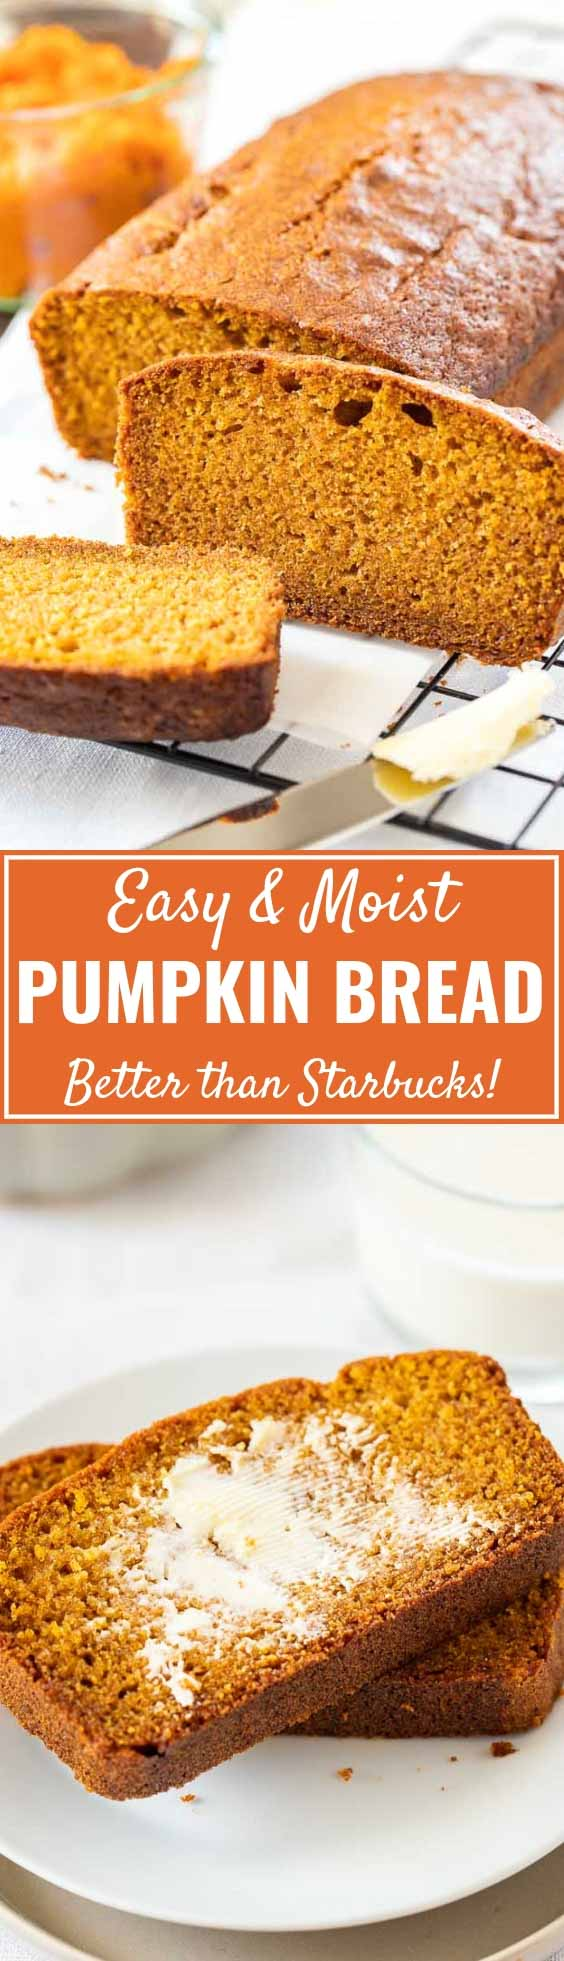 Easy Pumpkin Bread tastes so flavorful and is super easy to make from scratch! This simple Pumpkin Spice Bread is so moist and tastes even better than the one you can get at Starbucks. A family favorite that kids and grown-ups will love!#PumpkinSpice #PumpkinBread #FallRecipes #Breakfast #PumpkinRecipes #FallBreakfast #Pumpkin #Quickbread